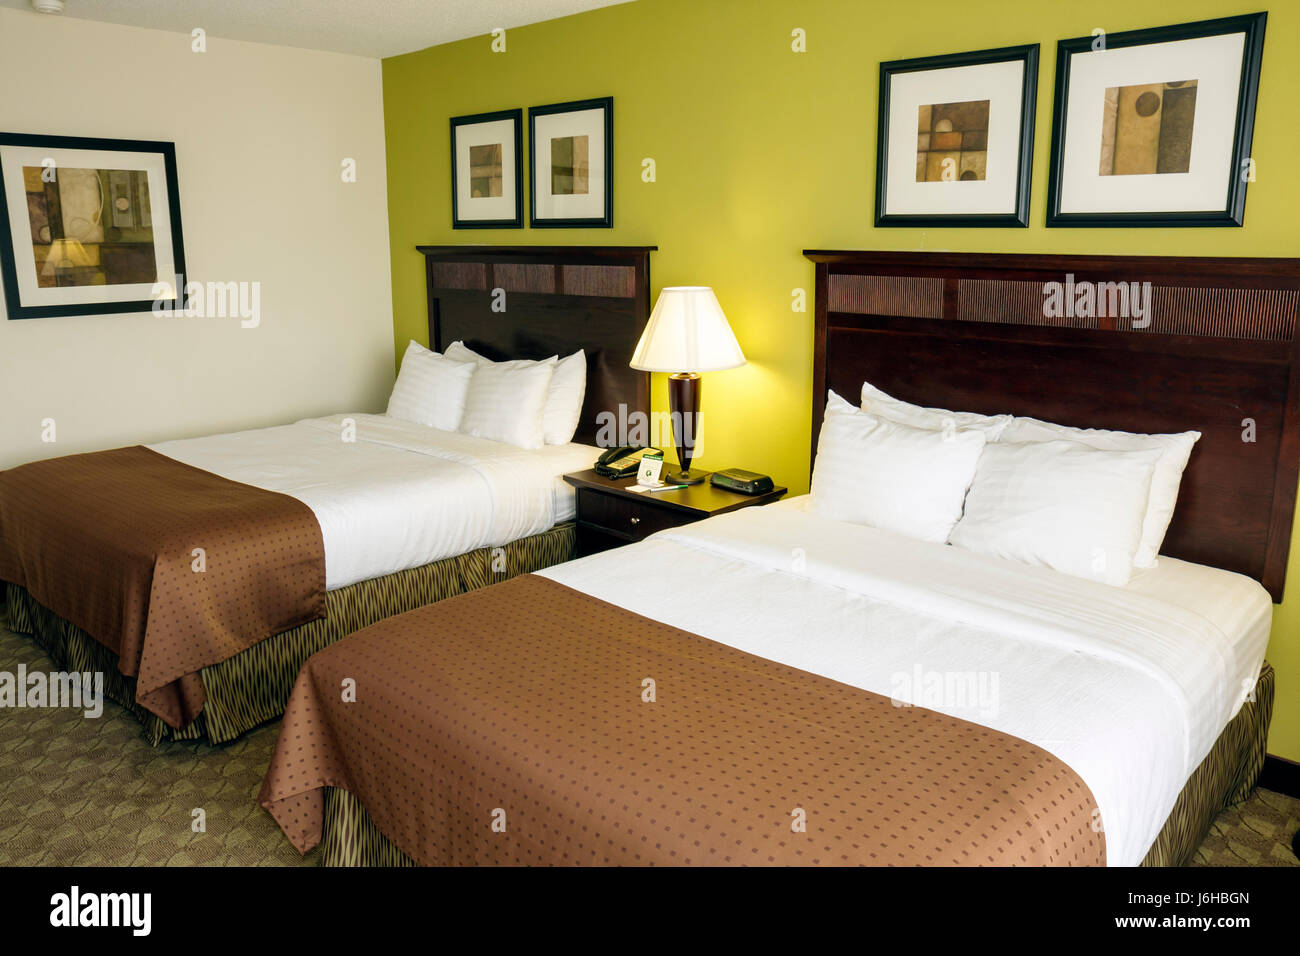 Virginia Roanoke Holiday Inn Tanglewood chain lodging hotel guest room double bed queen size lamps decor - Stock Image